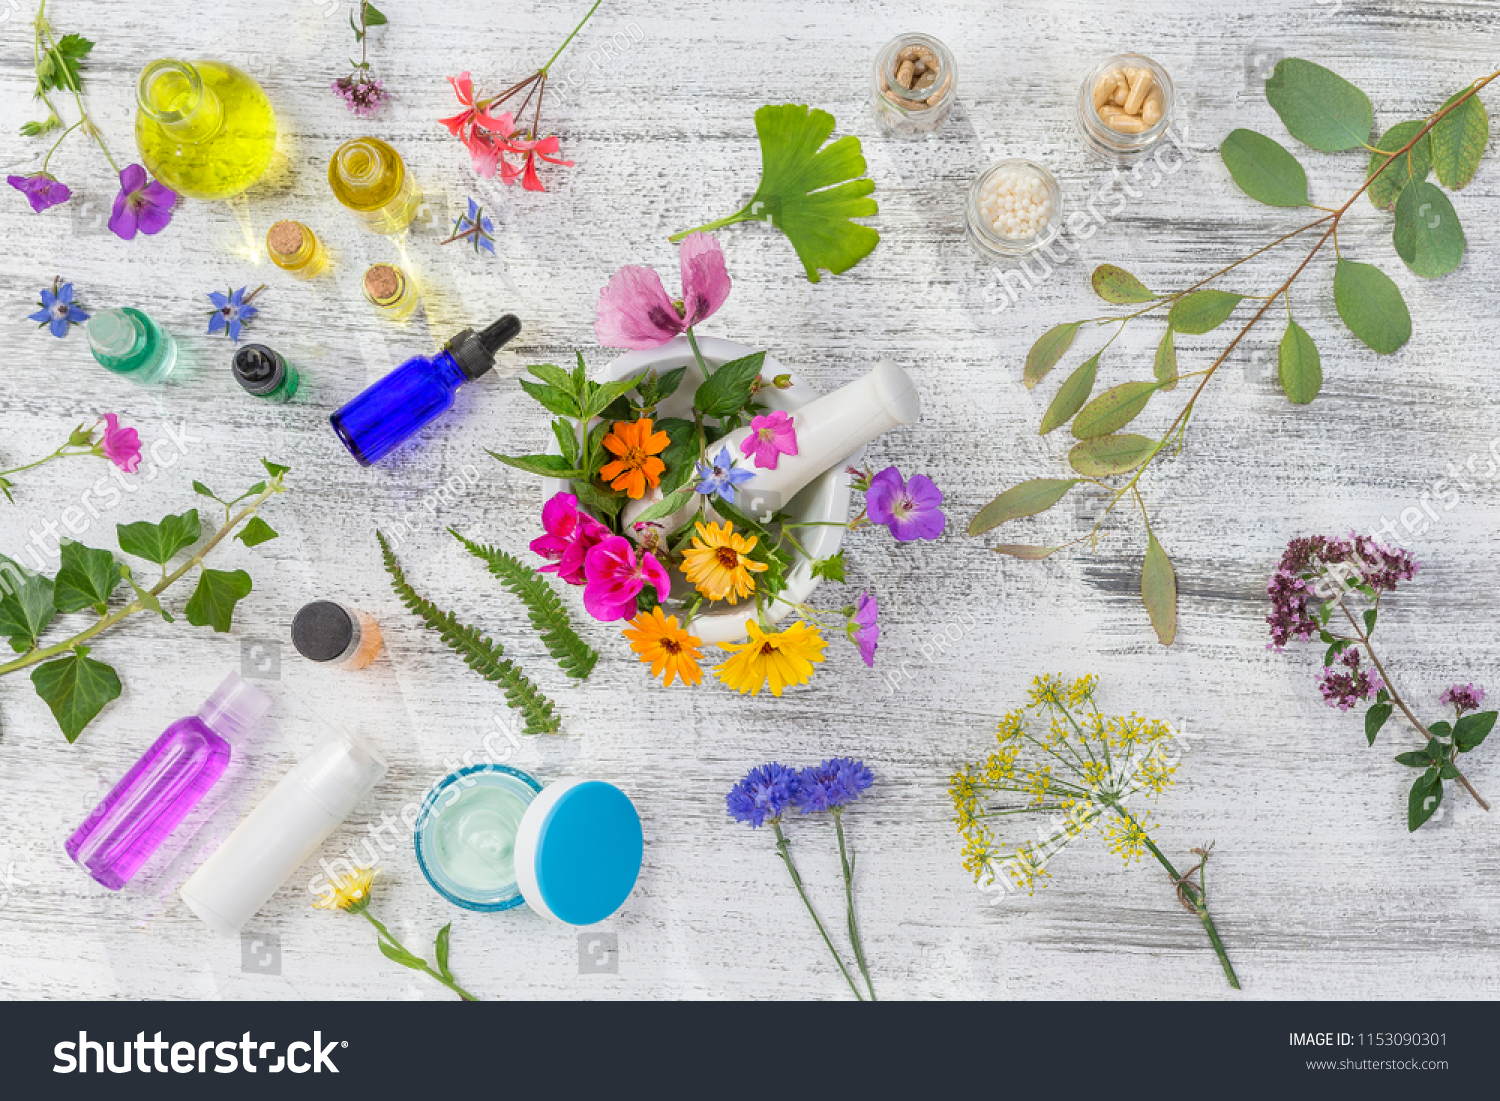 Natural Cosmetic Herbal Skin Care Products Stock Photo (Edit